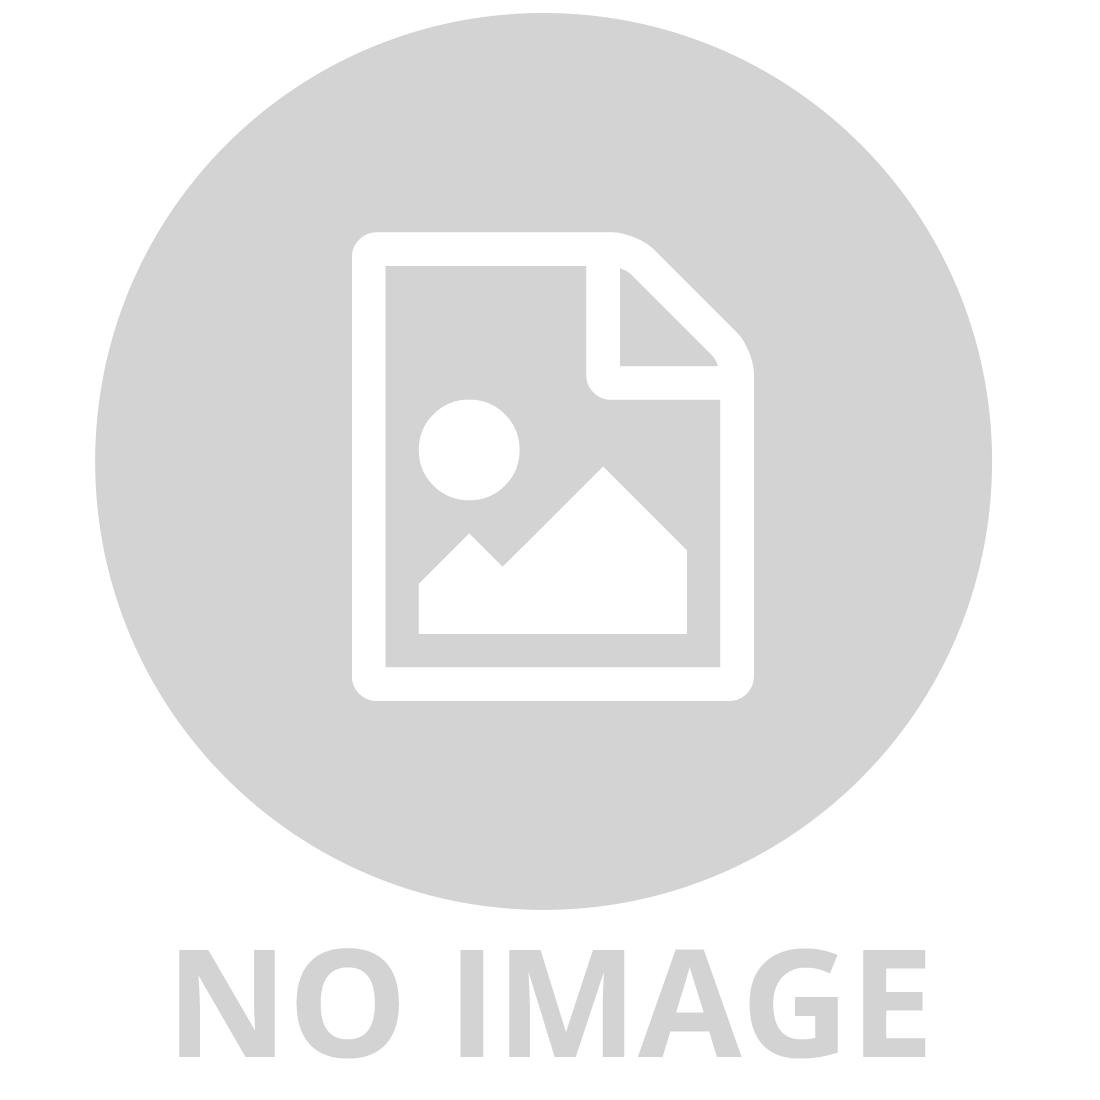 Caprice 1300 Ceiling Fan - 3 Colours